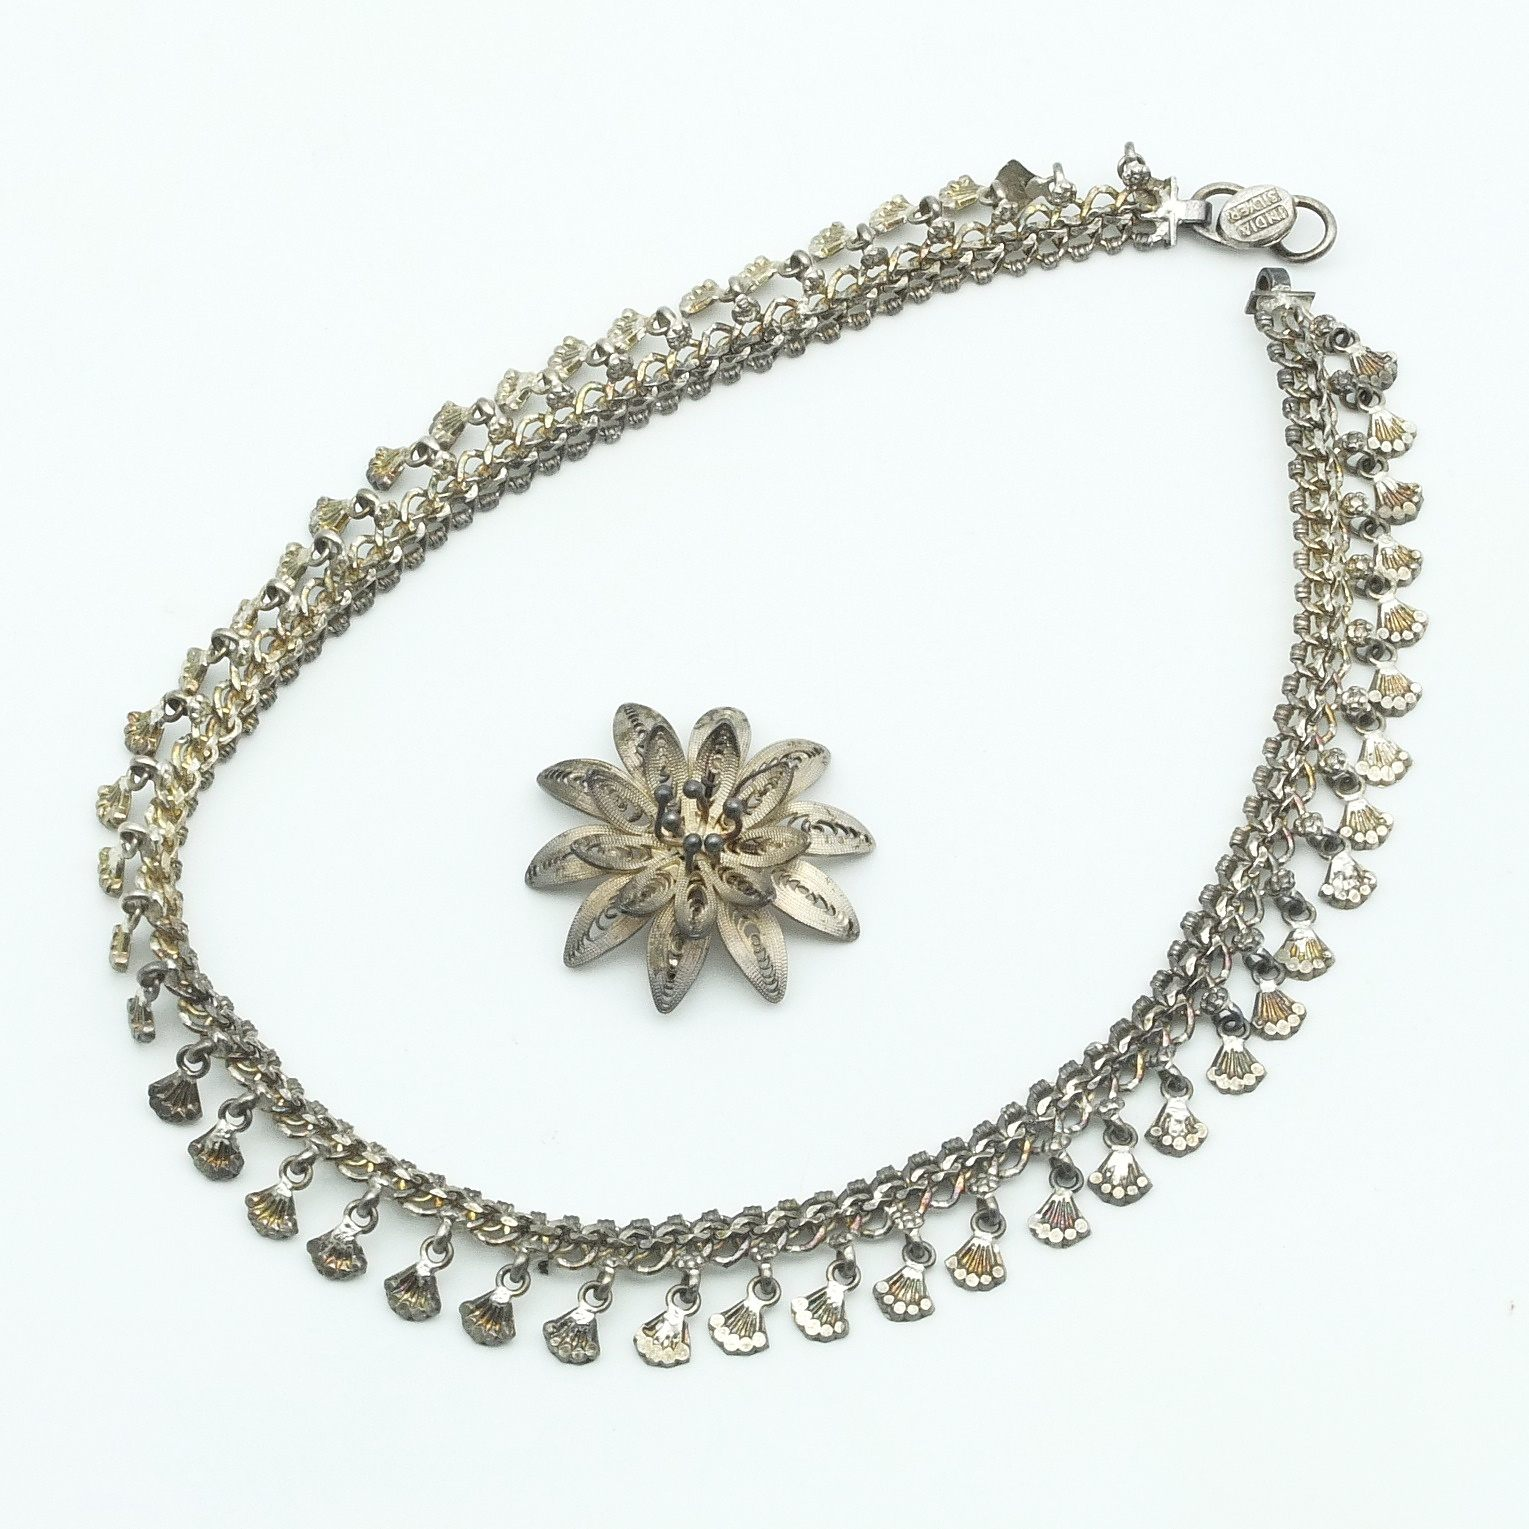 'Indian Silver Collier and Indian Silver Filigree Flower Brooch'